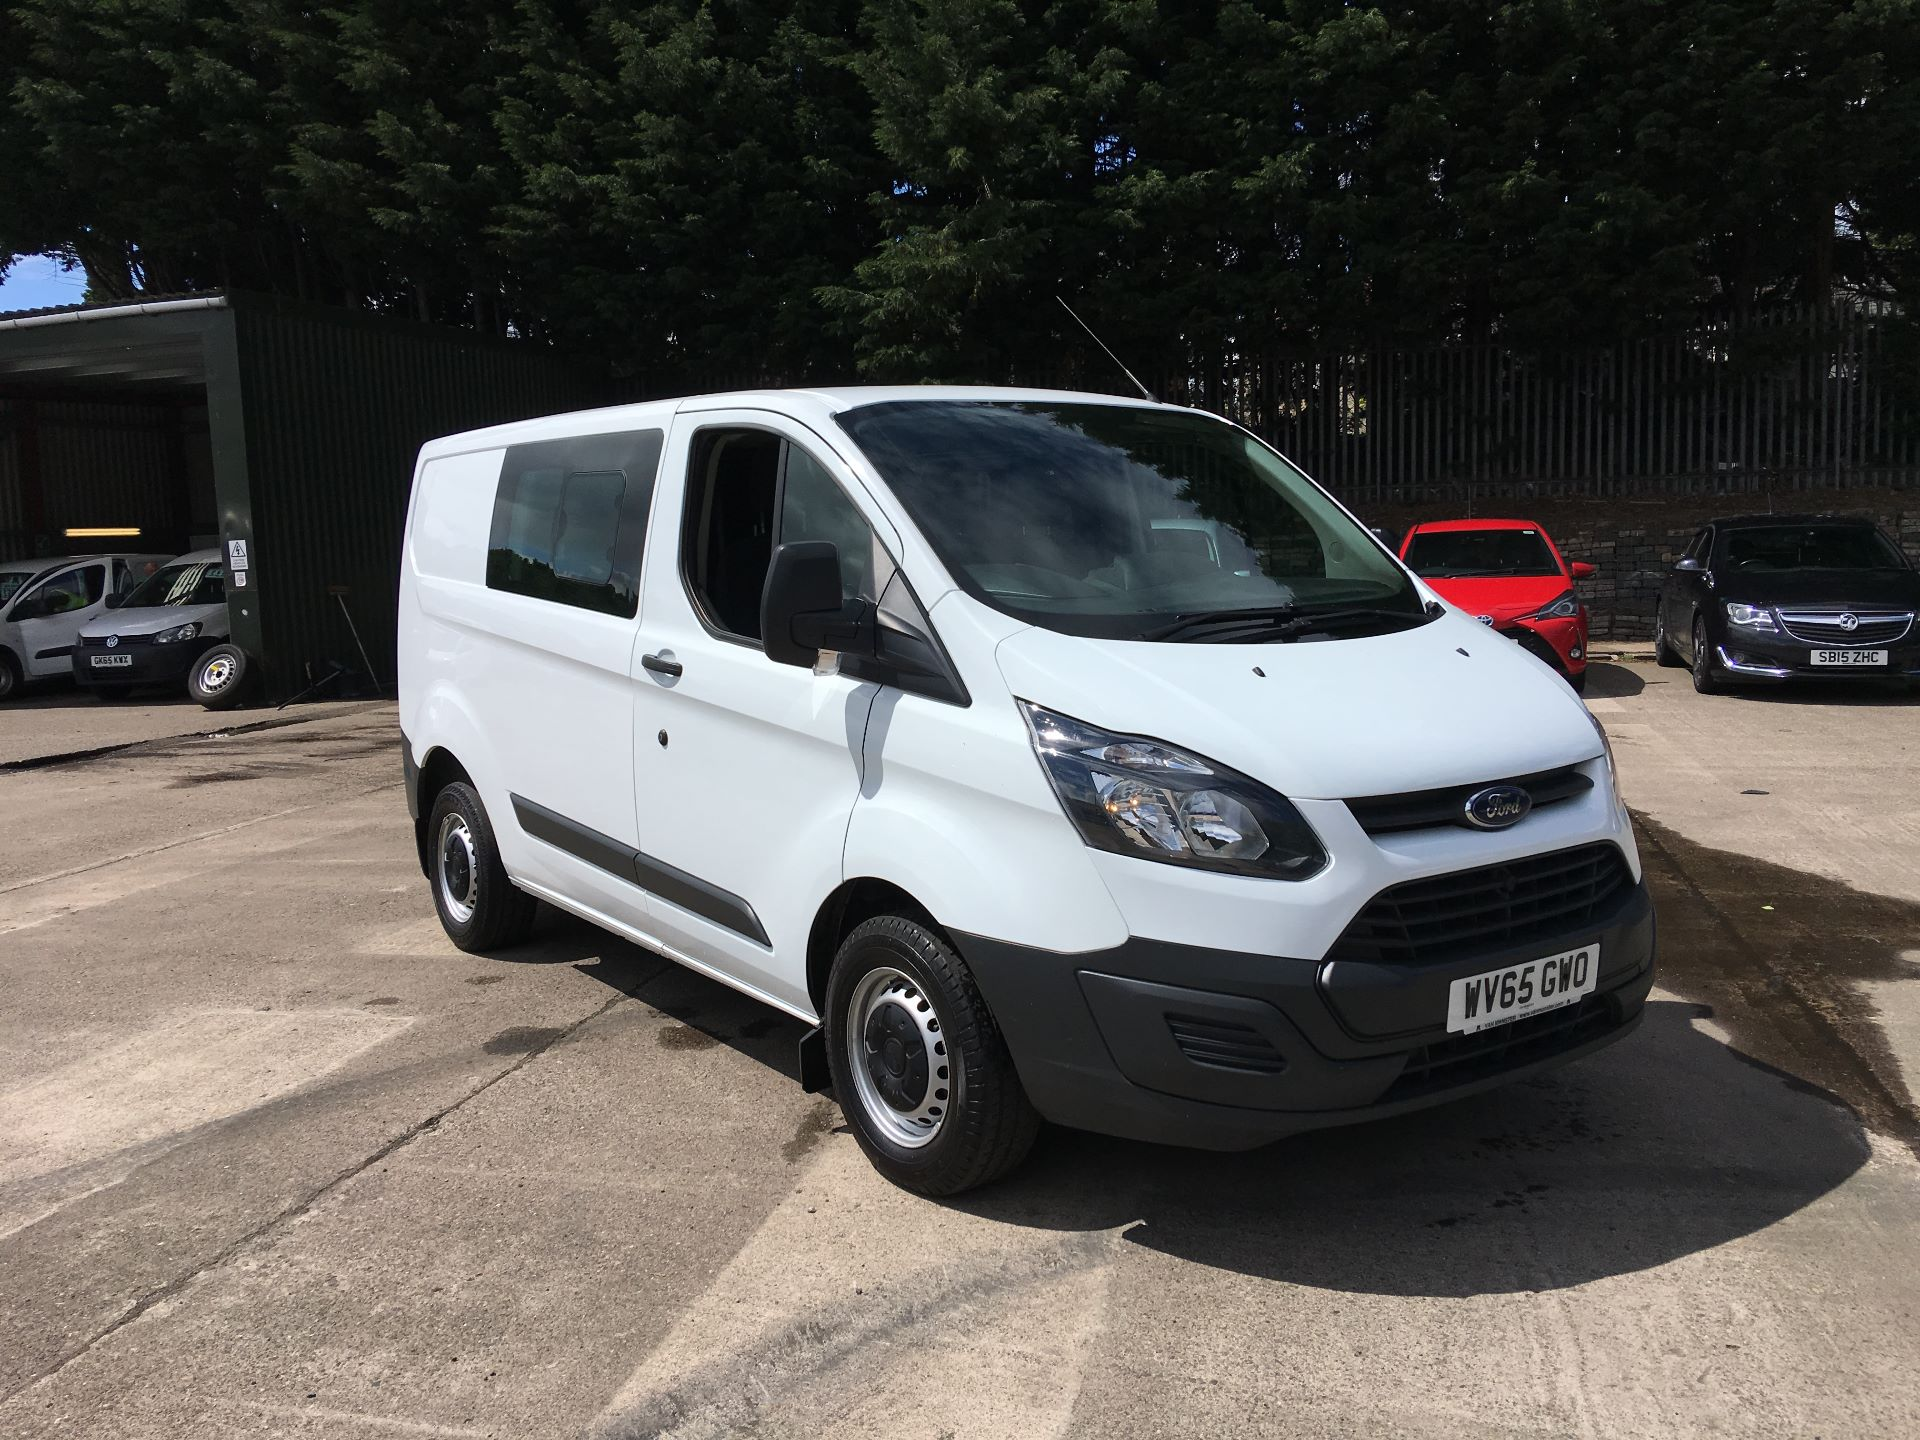 2015 Ford Transit Custom 290 L1 DIESEL FWD 2.2 TDCI 100PS LOW ROOF DOUBLE CAB VAN EURO 5 (WV65GWO)